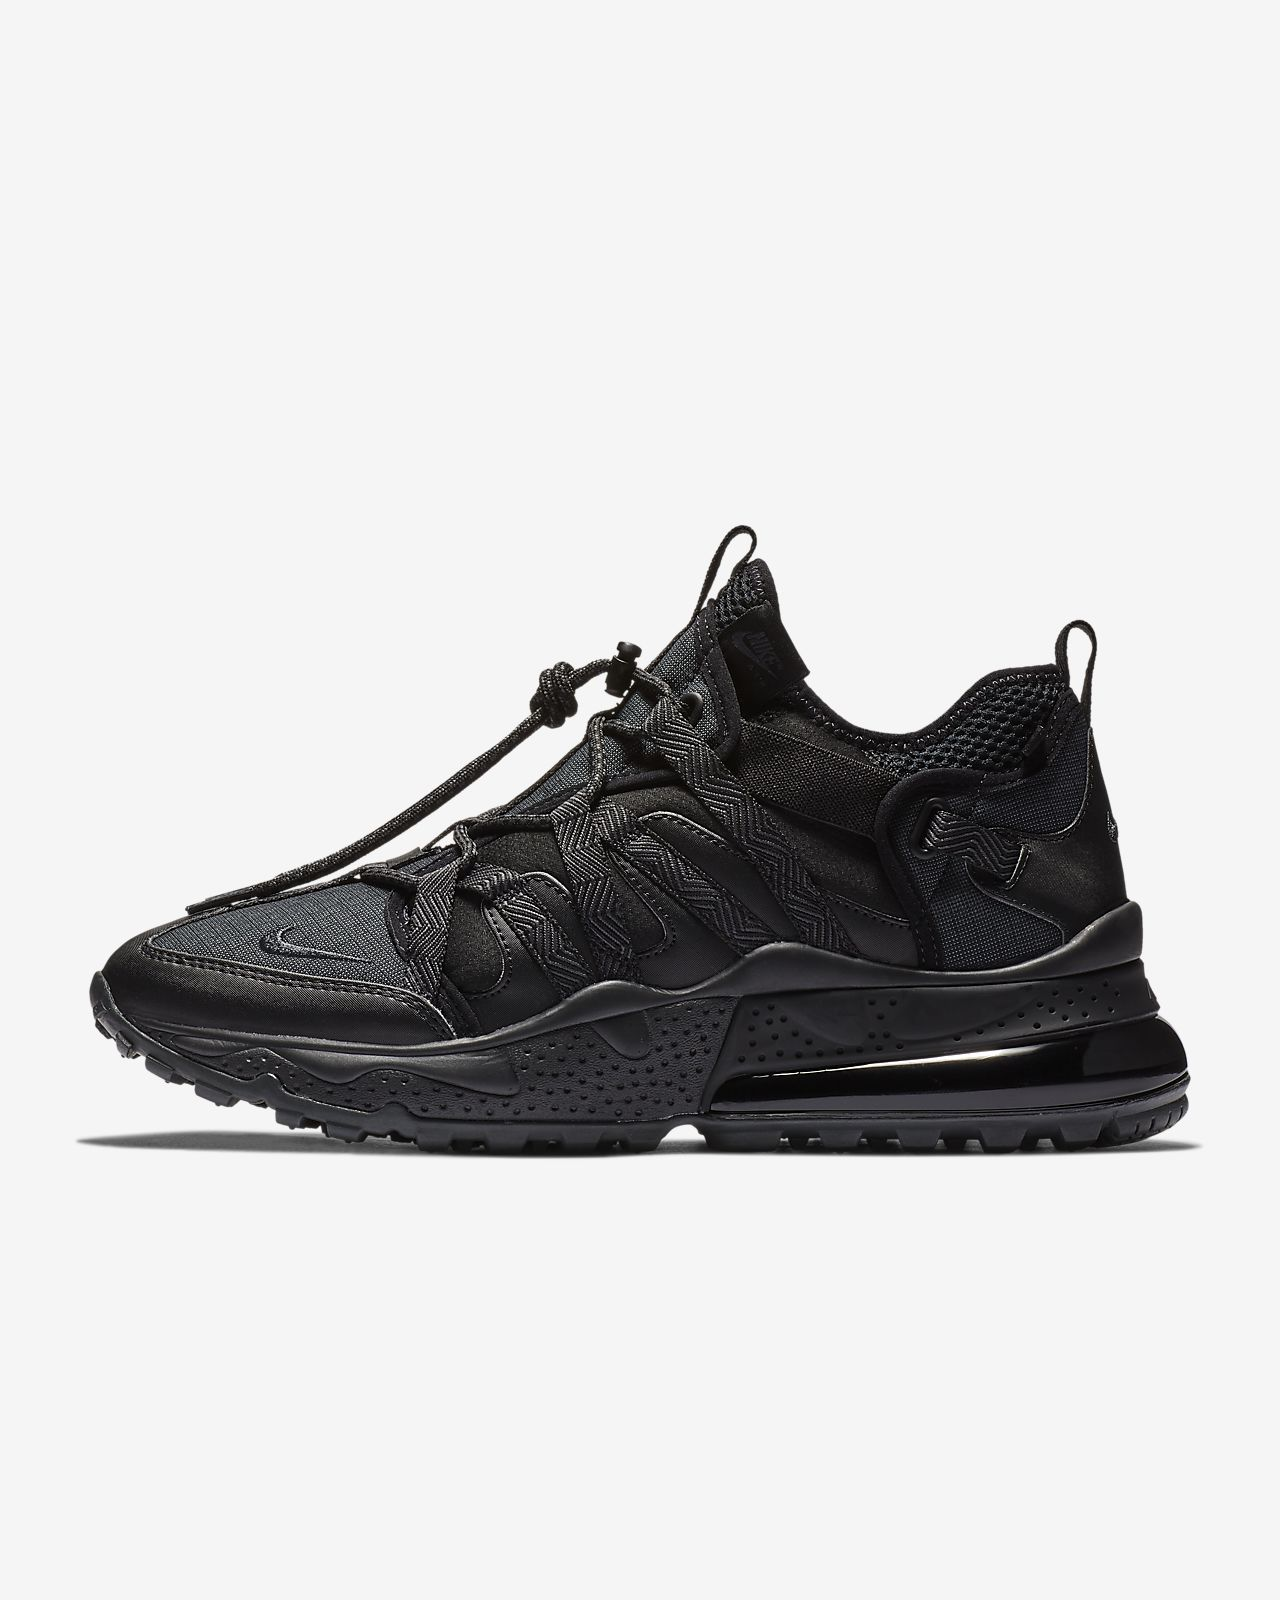 meet ceb0c c7348 ... Nike Air Max 270 Bowfin Men s Shoe